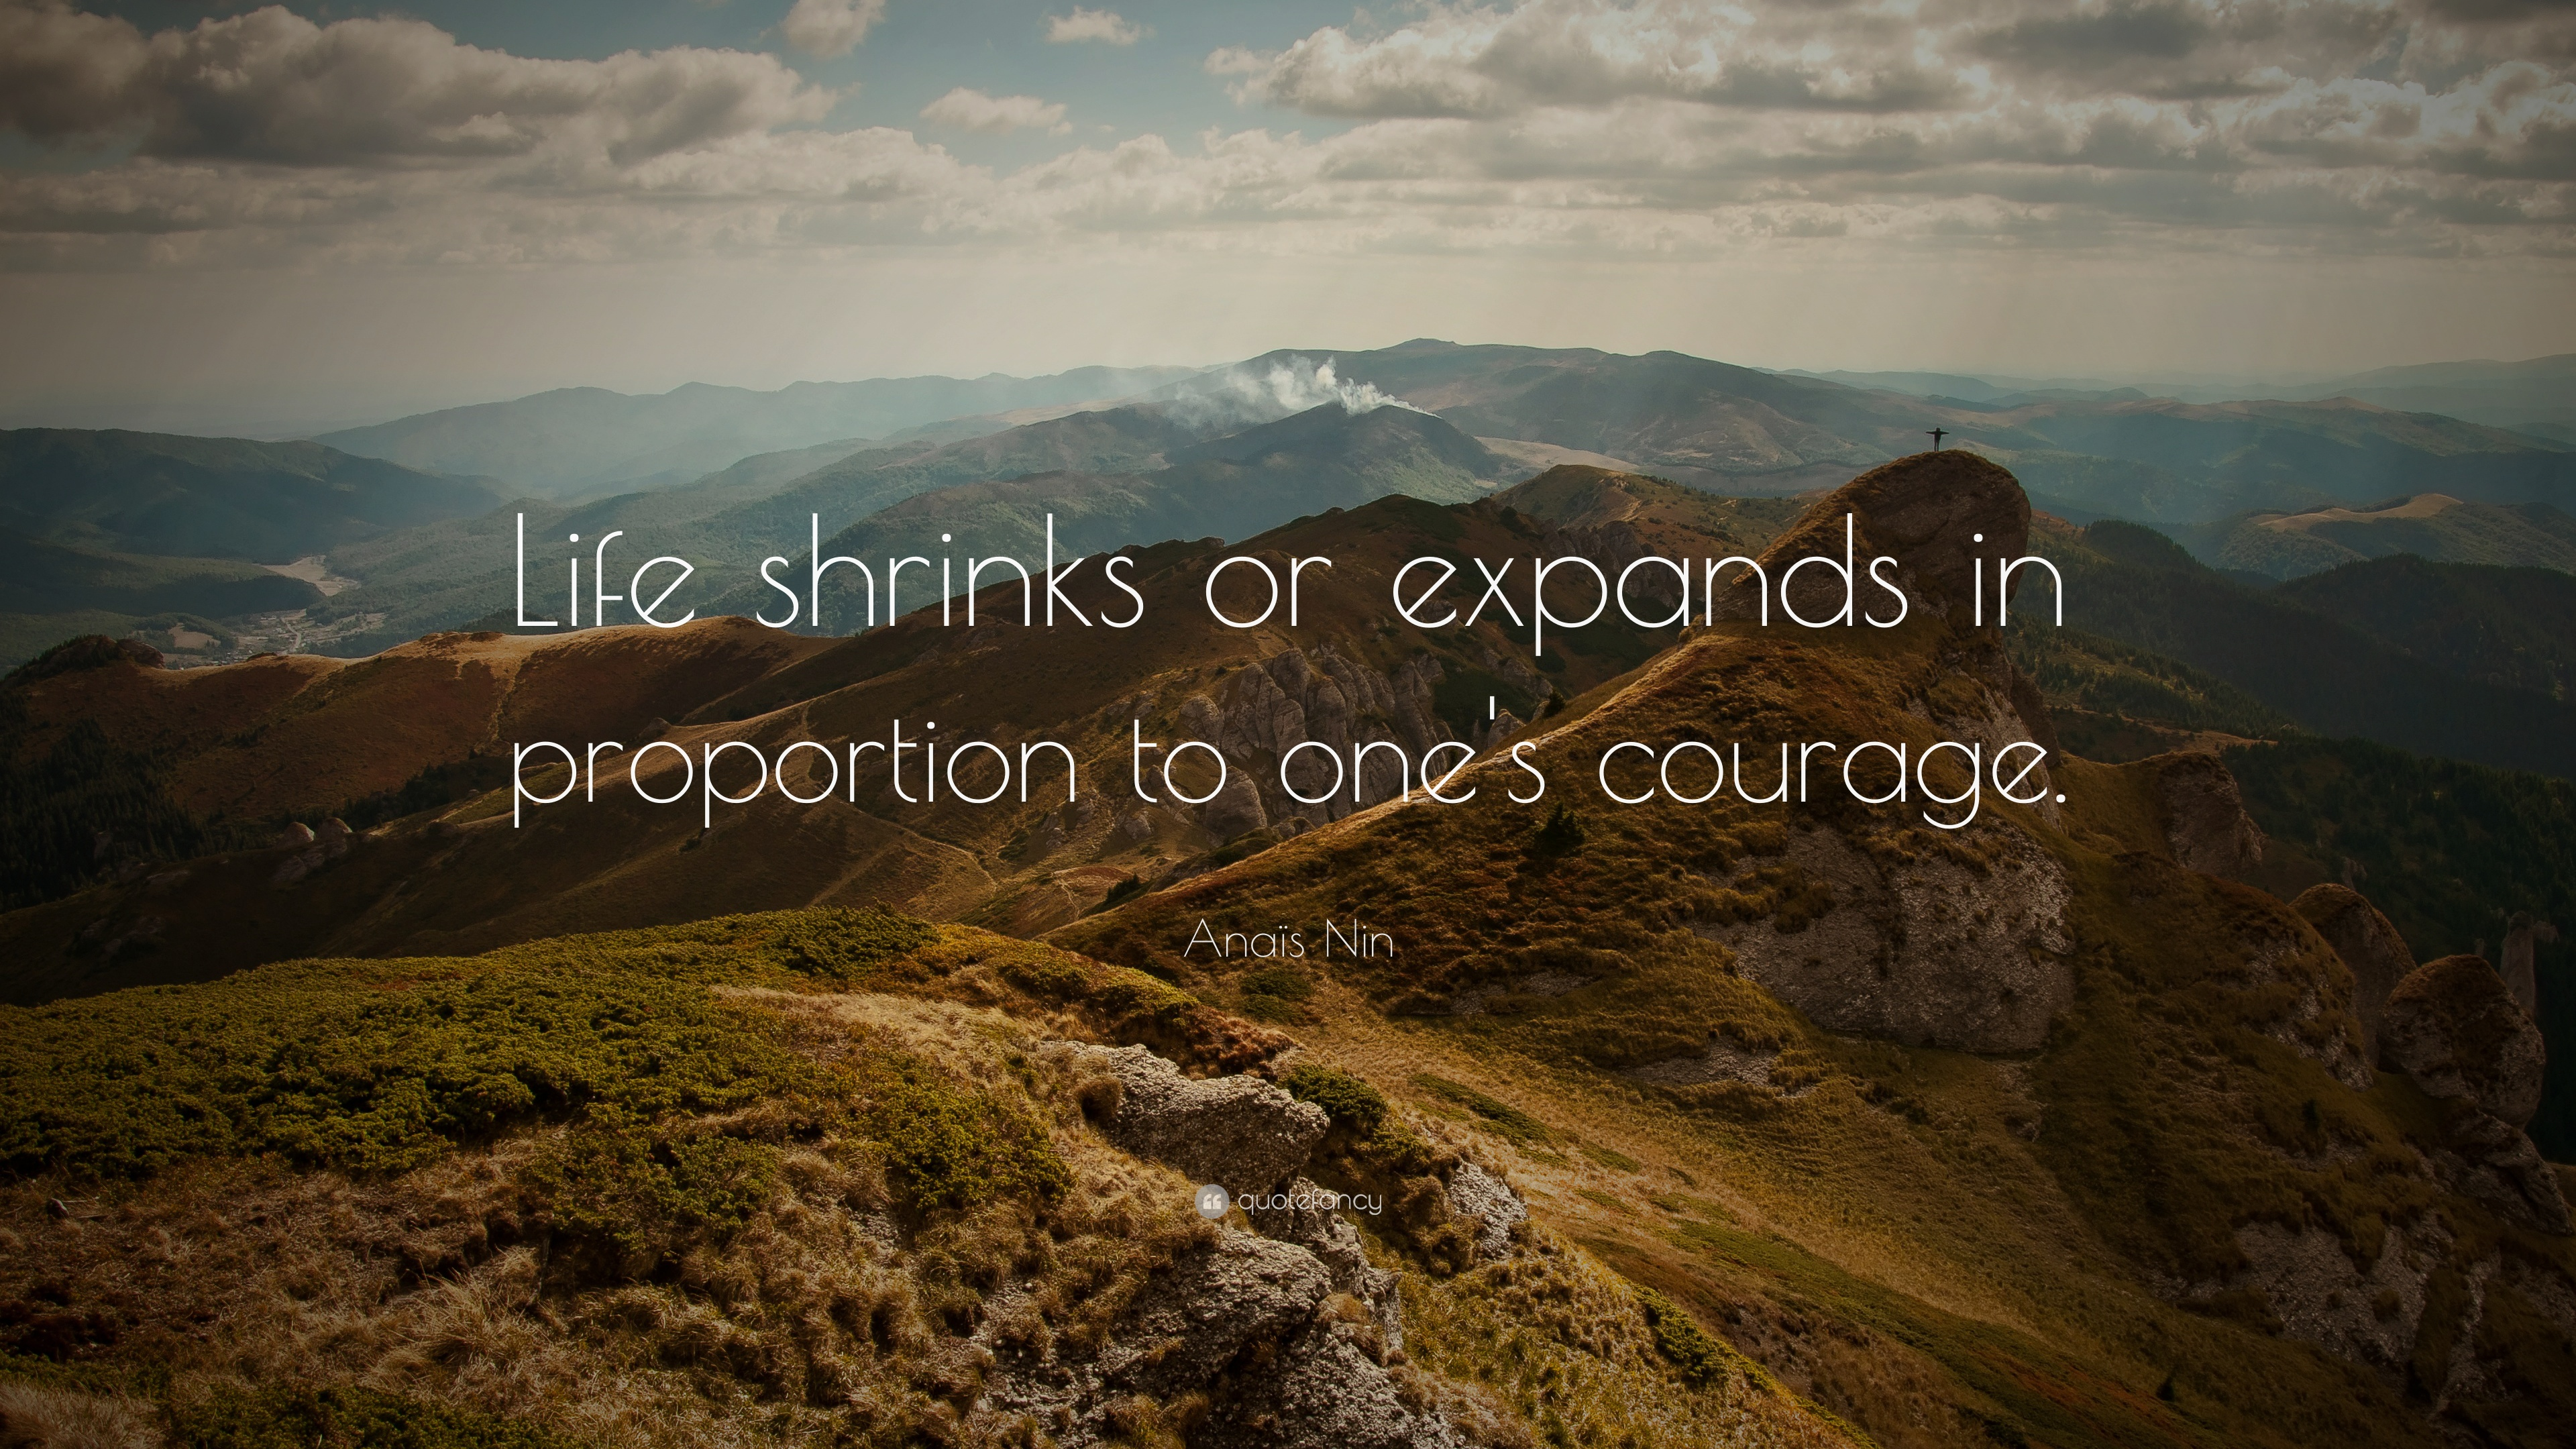 Attitude Quotes Hd Wallpapers For Pc Ana 239 S Nin Quote Life Shrinks Or Expands In Proportion To